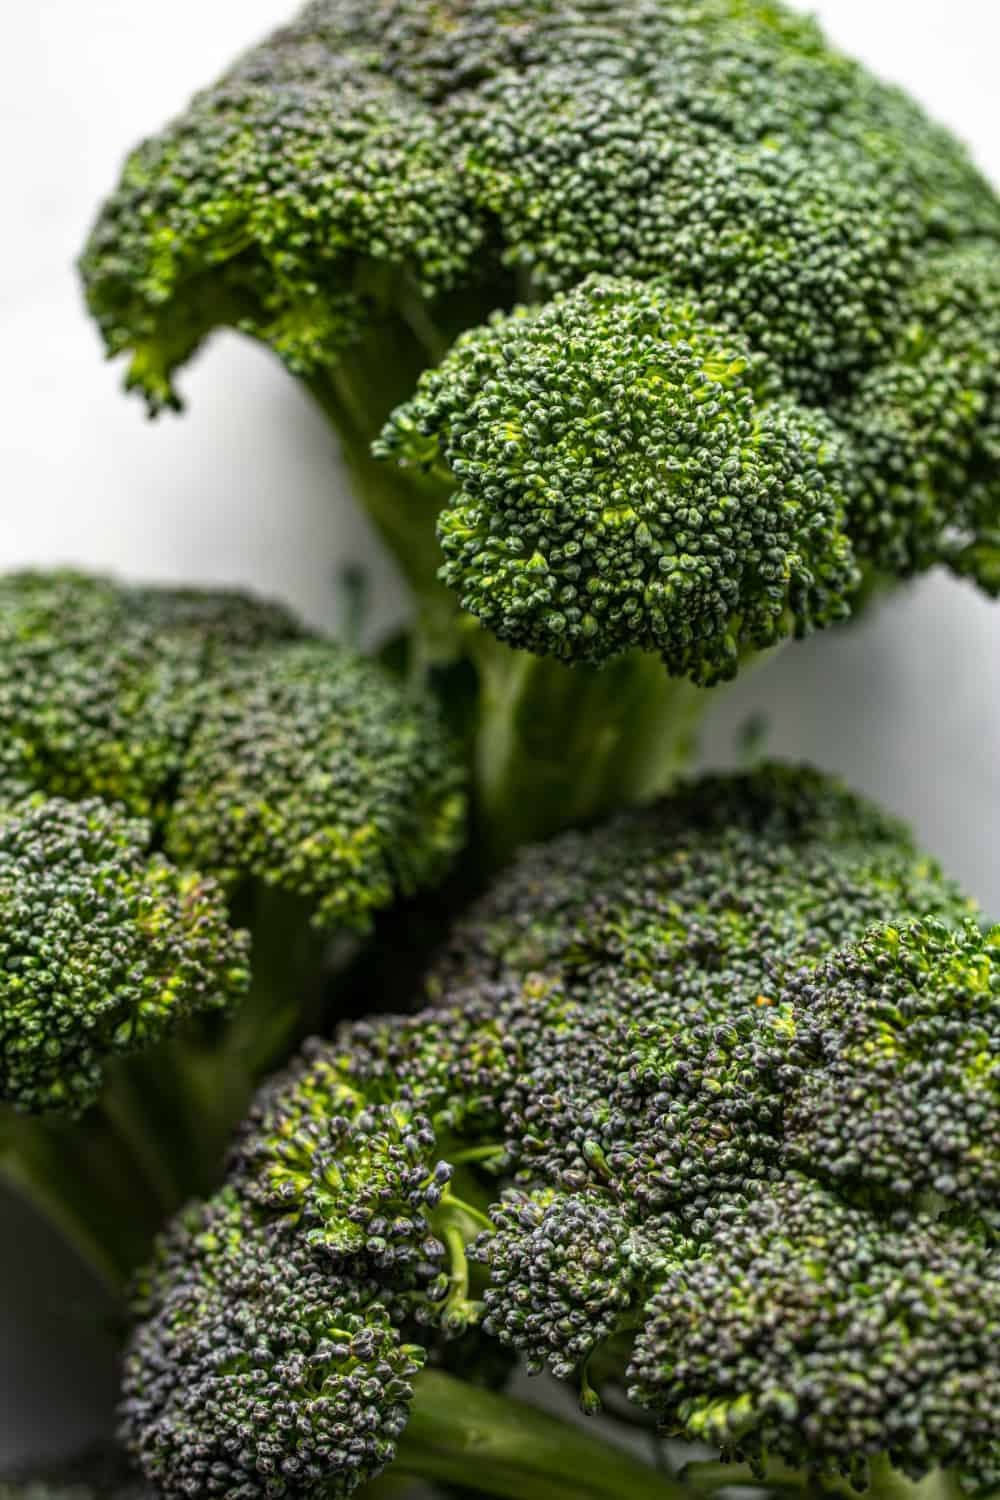 Three heads of broccoli on a white background